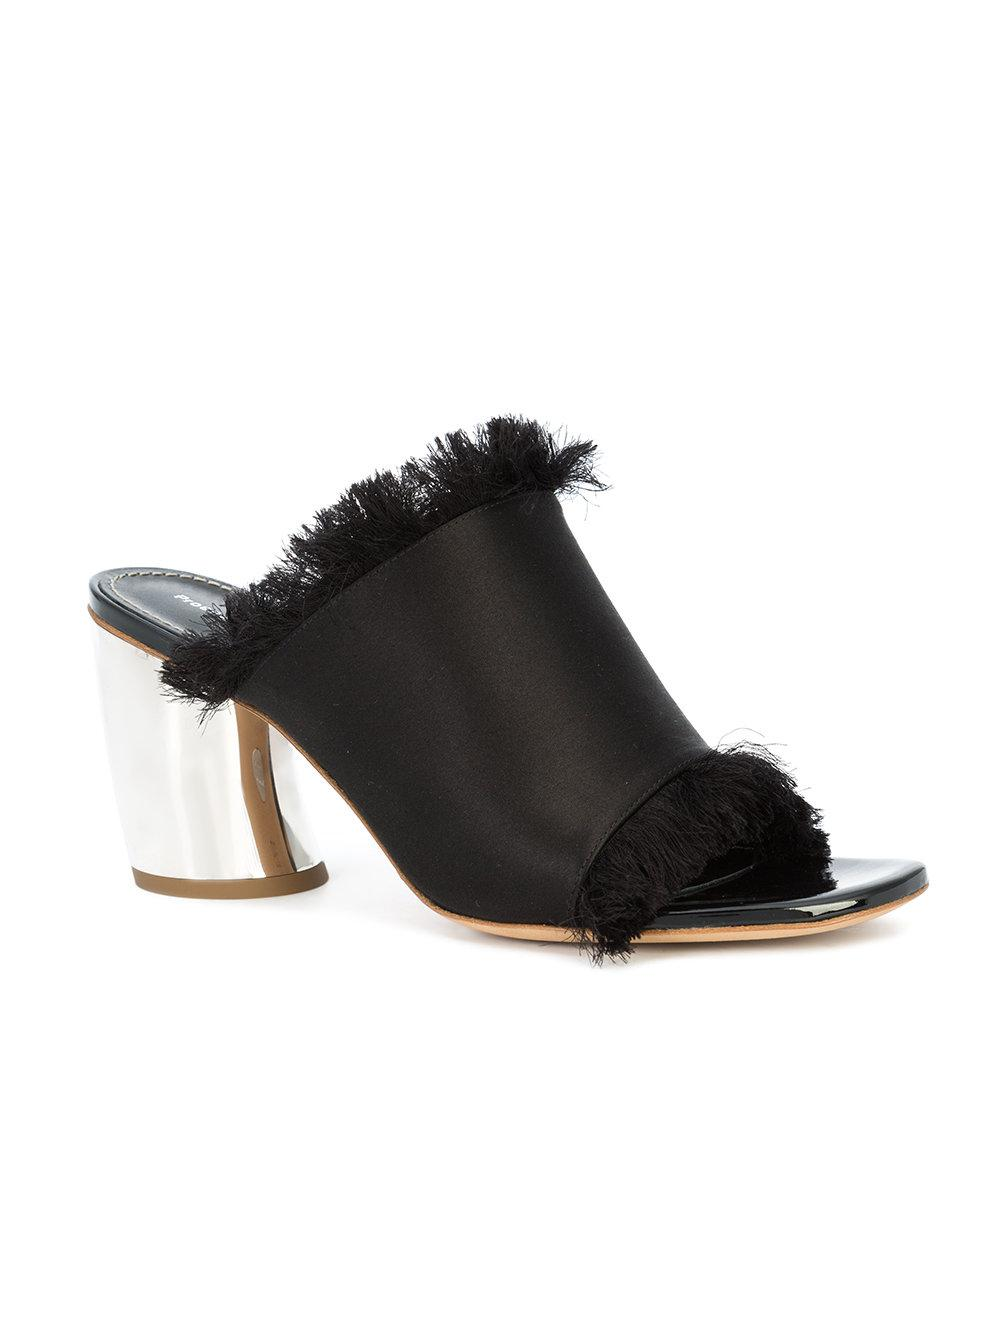 outlet official Proenza Schouler Black Suede Curved Heel Mules free shipping how much official site sale online wide range of discount how much yXjqF1d